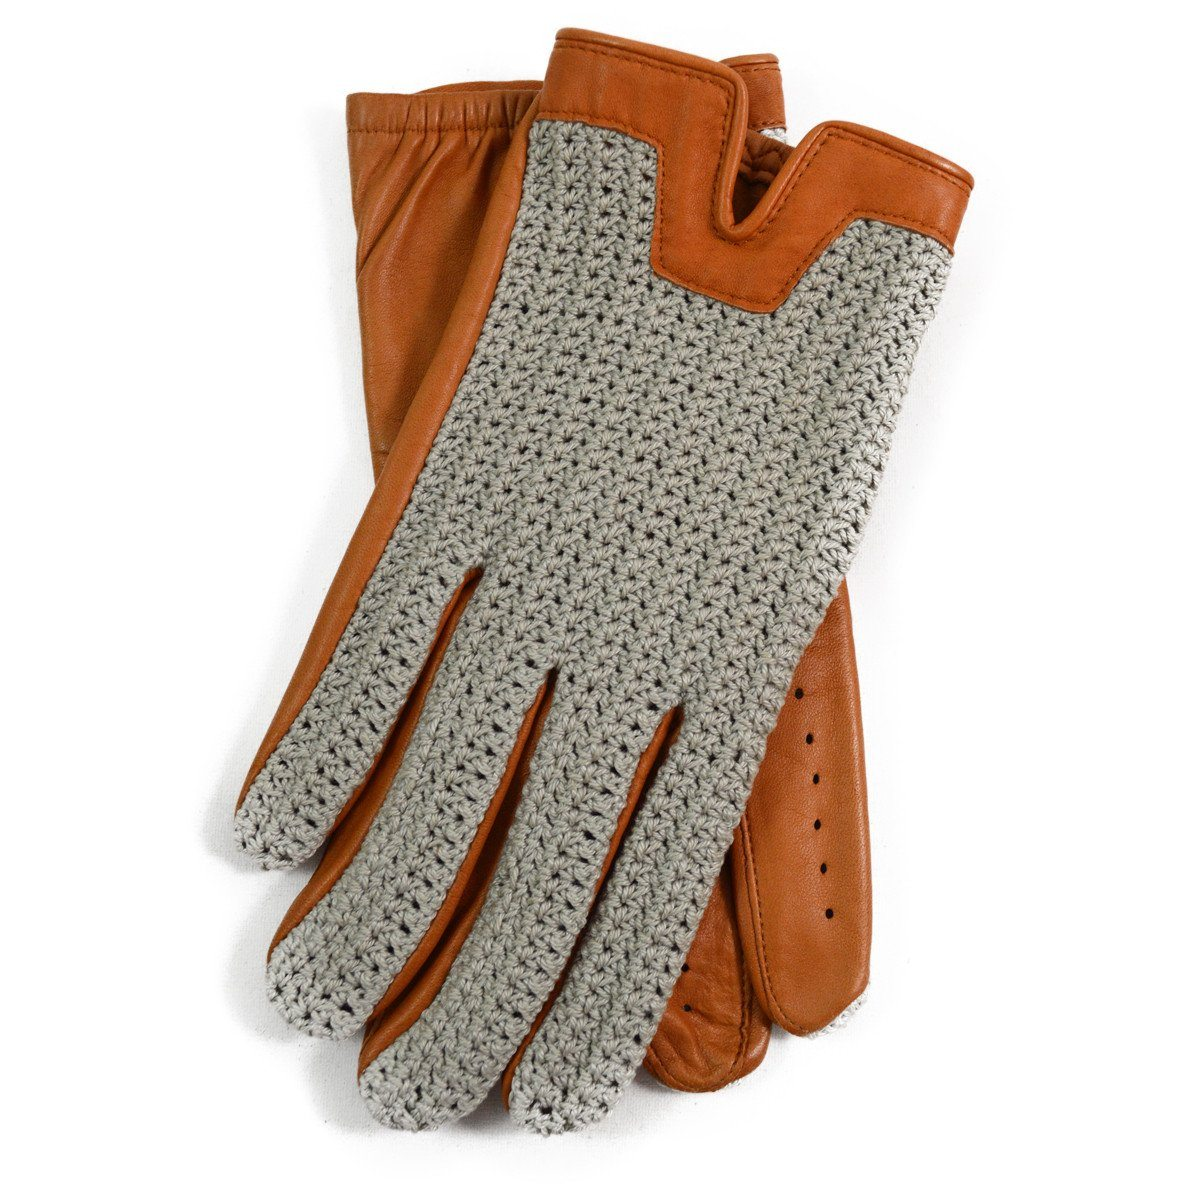 Handmade leather driving gloves - Dents Donnington Crochet And Leather Driving Gloves Cork